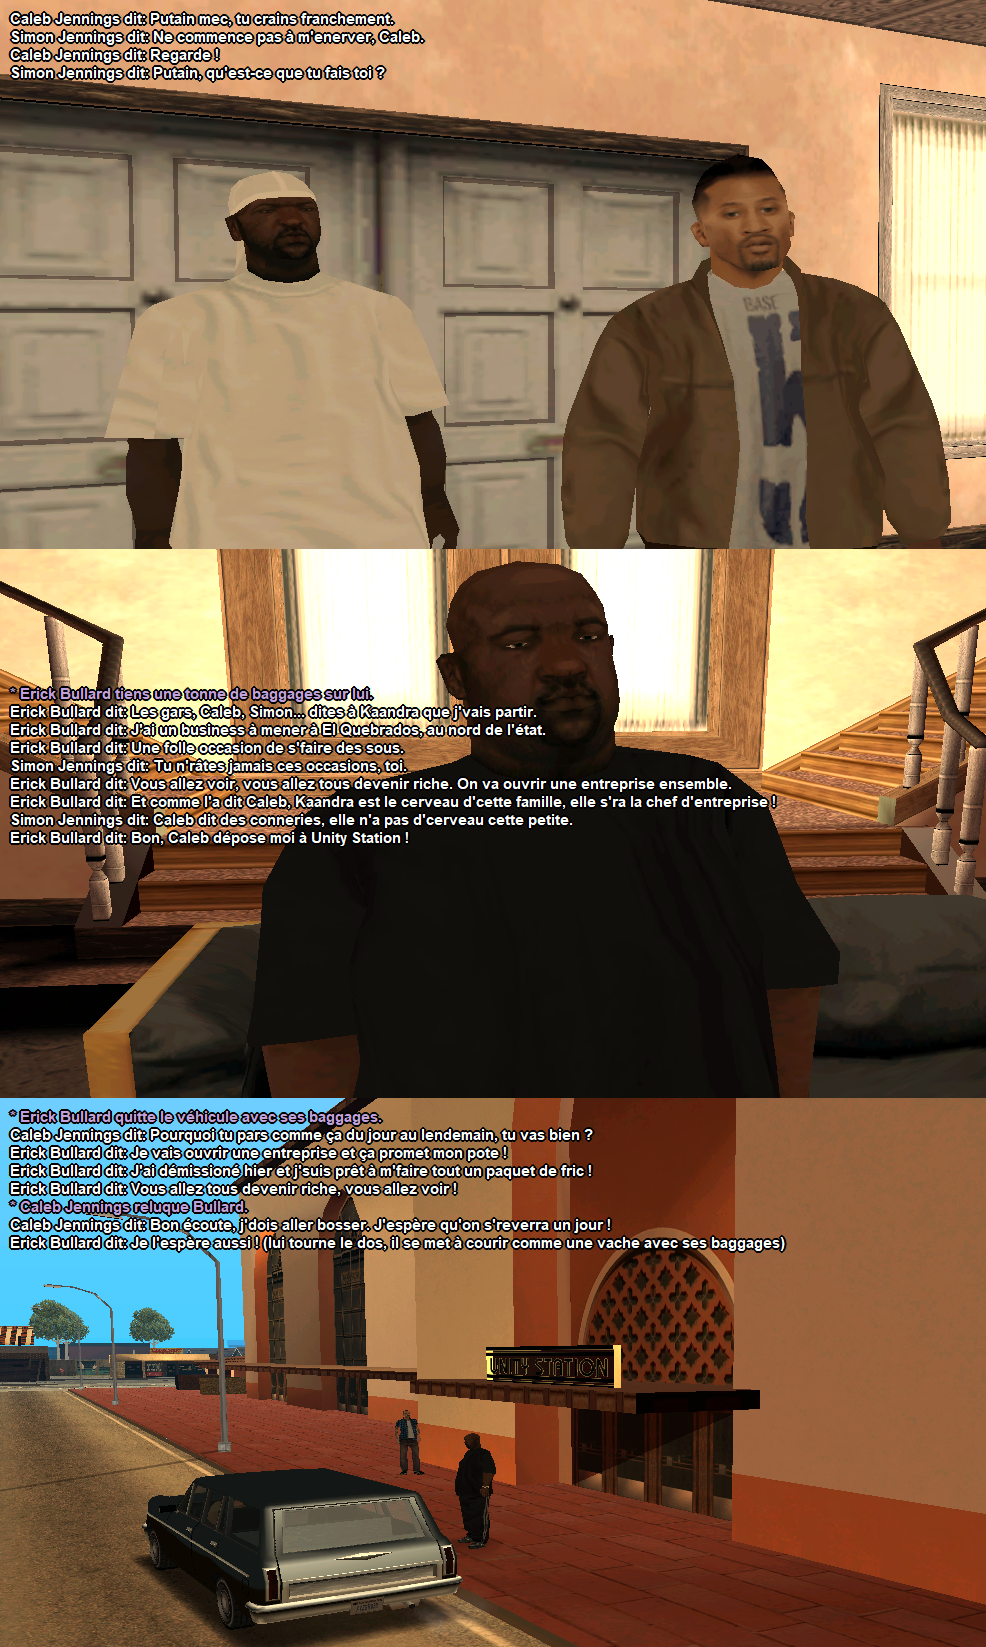 Los Santos Sheriff's Department - A tradition of service (8) - Page 16 1535636516-b